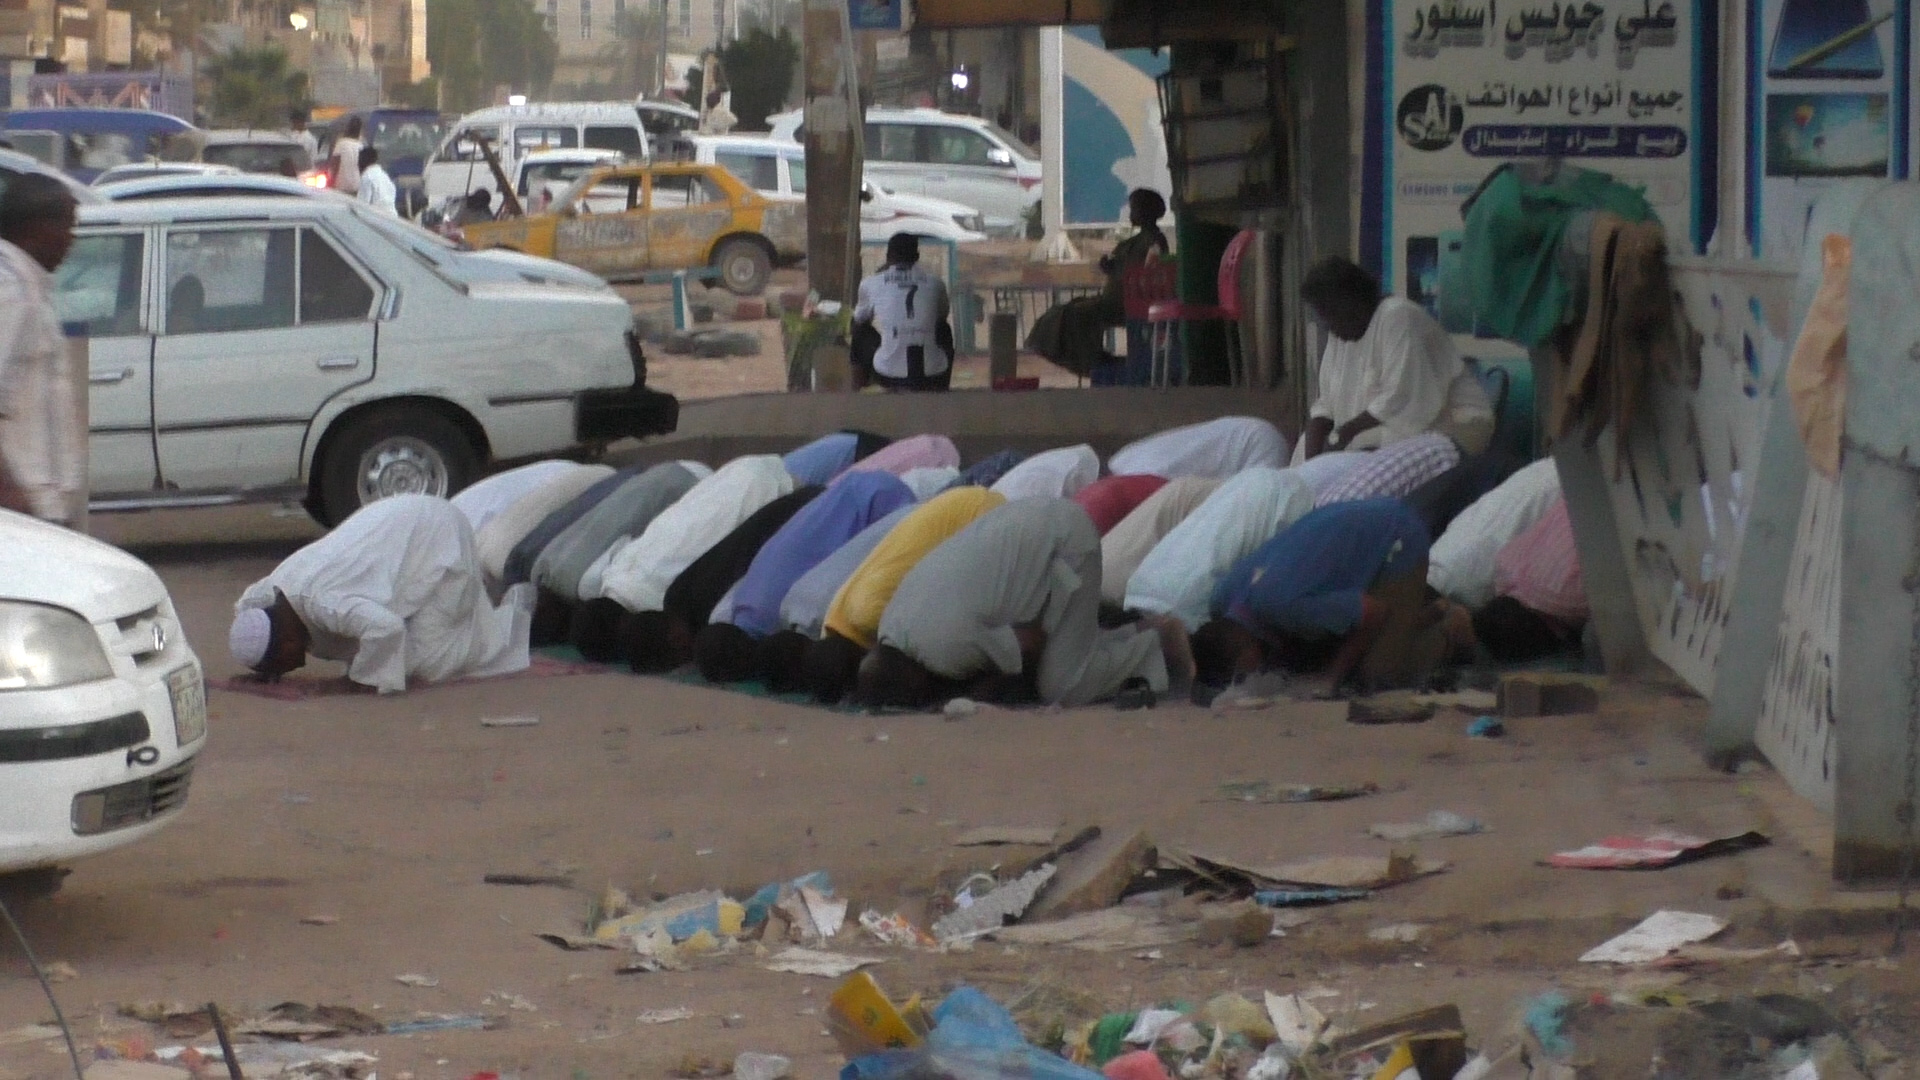 Muslim prayer service on a street in Khartoum, Sudan, November 2020. (Ziv Genesove)